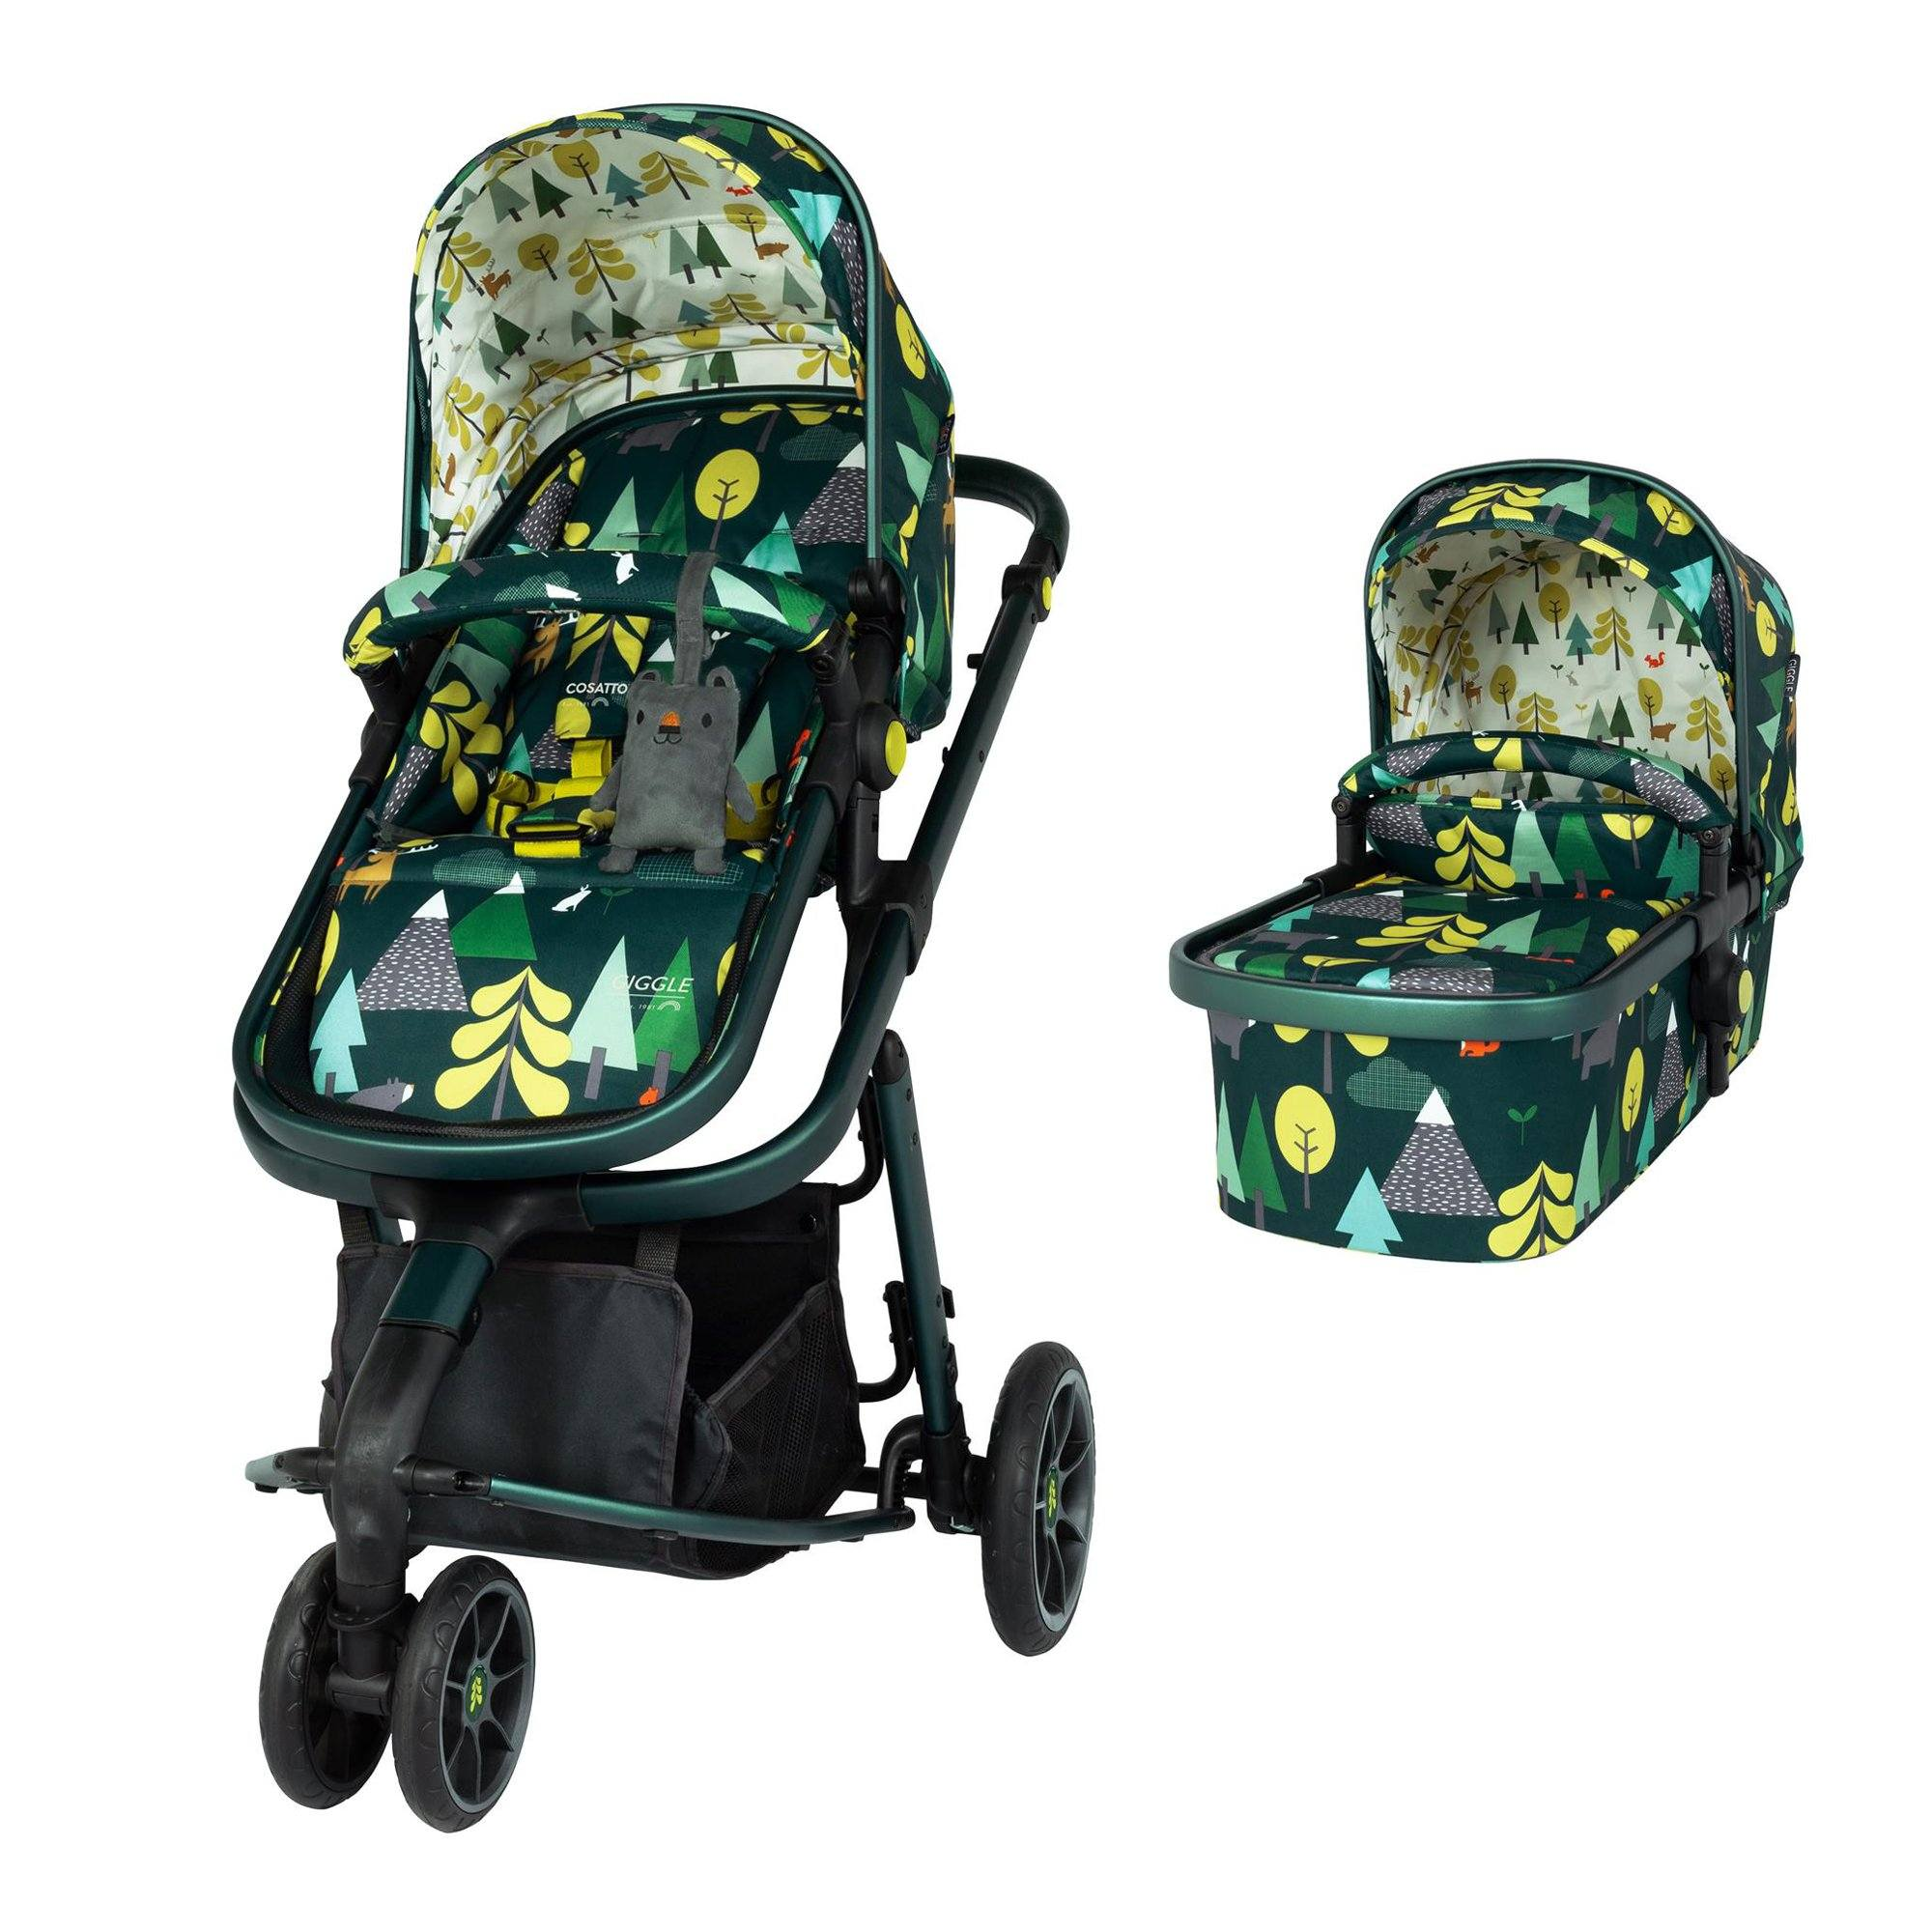 Cosatto Giggle 3 Marvellous Bundle with Hold Car Seat - Into the Wild